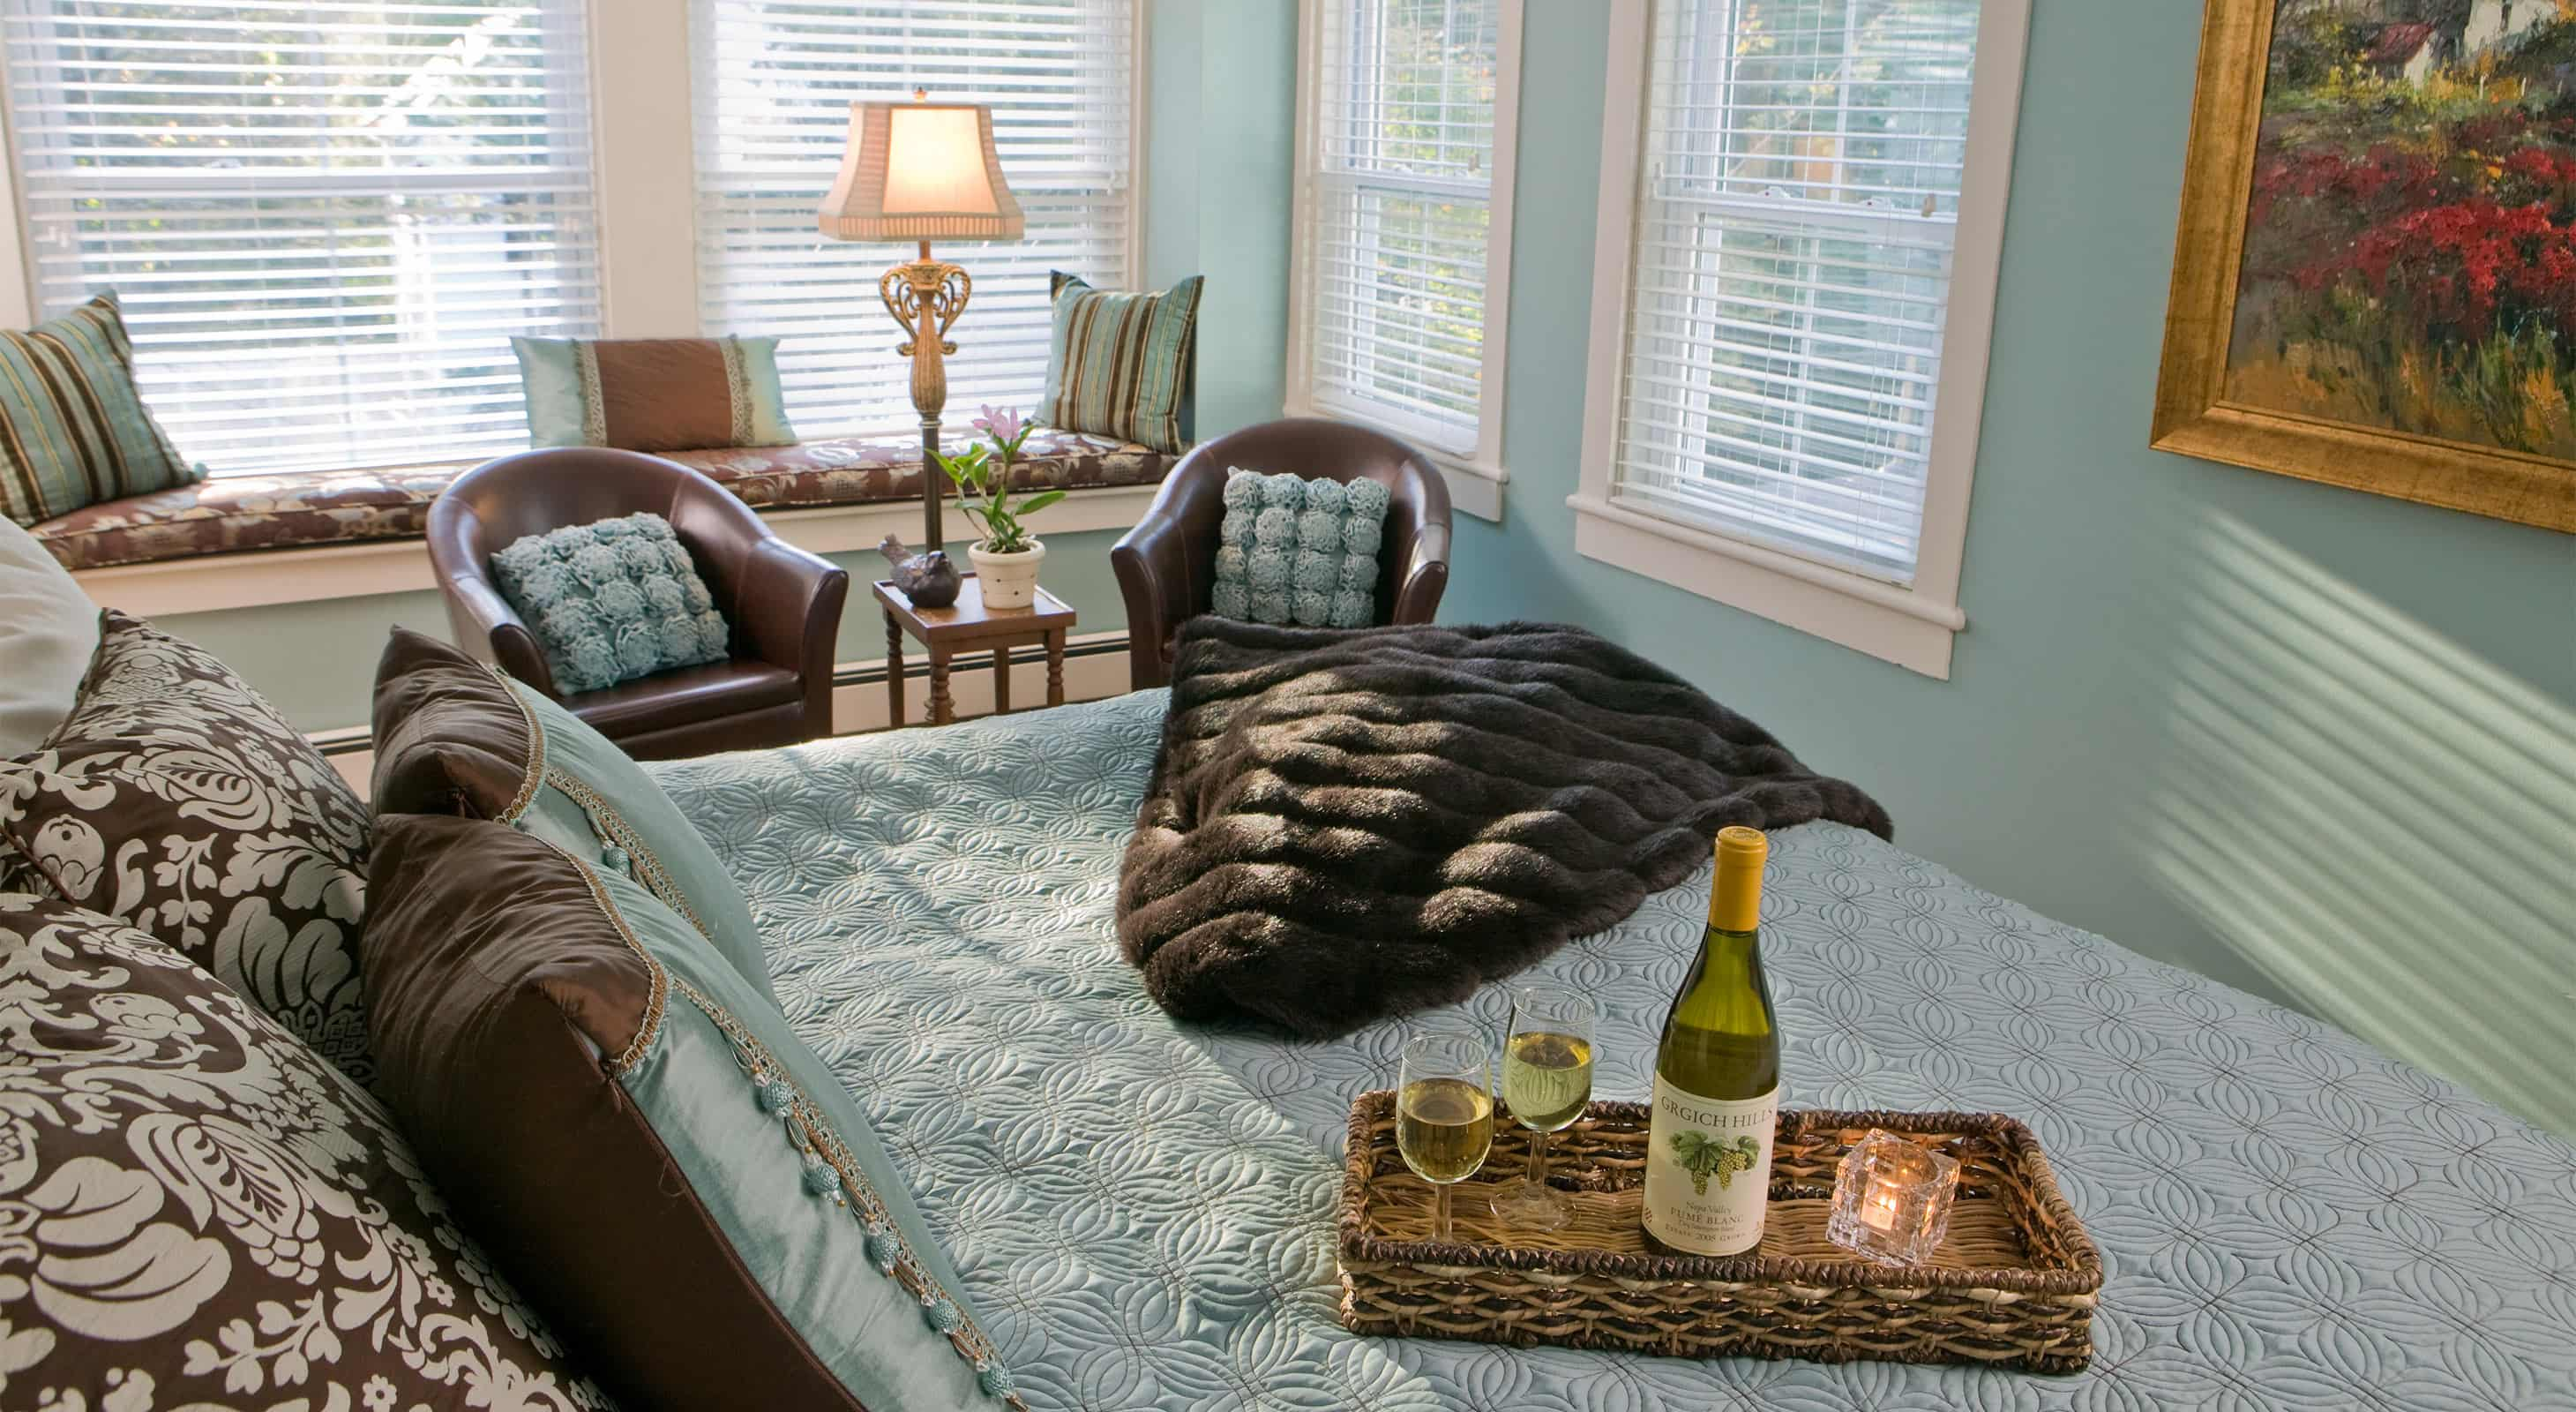 Bed with wine in the Sweet Woodfruff room at our Maine Coast Inn